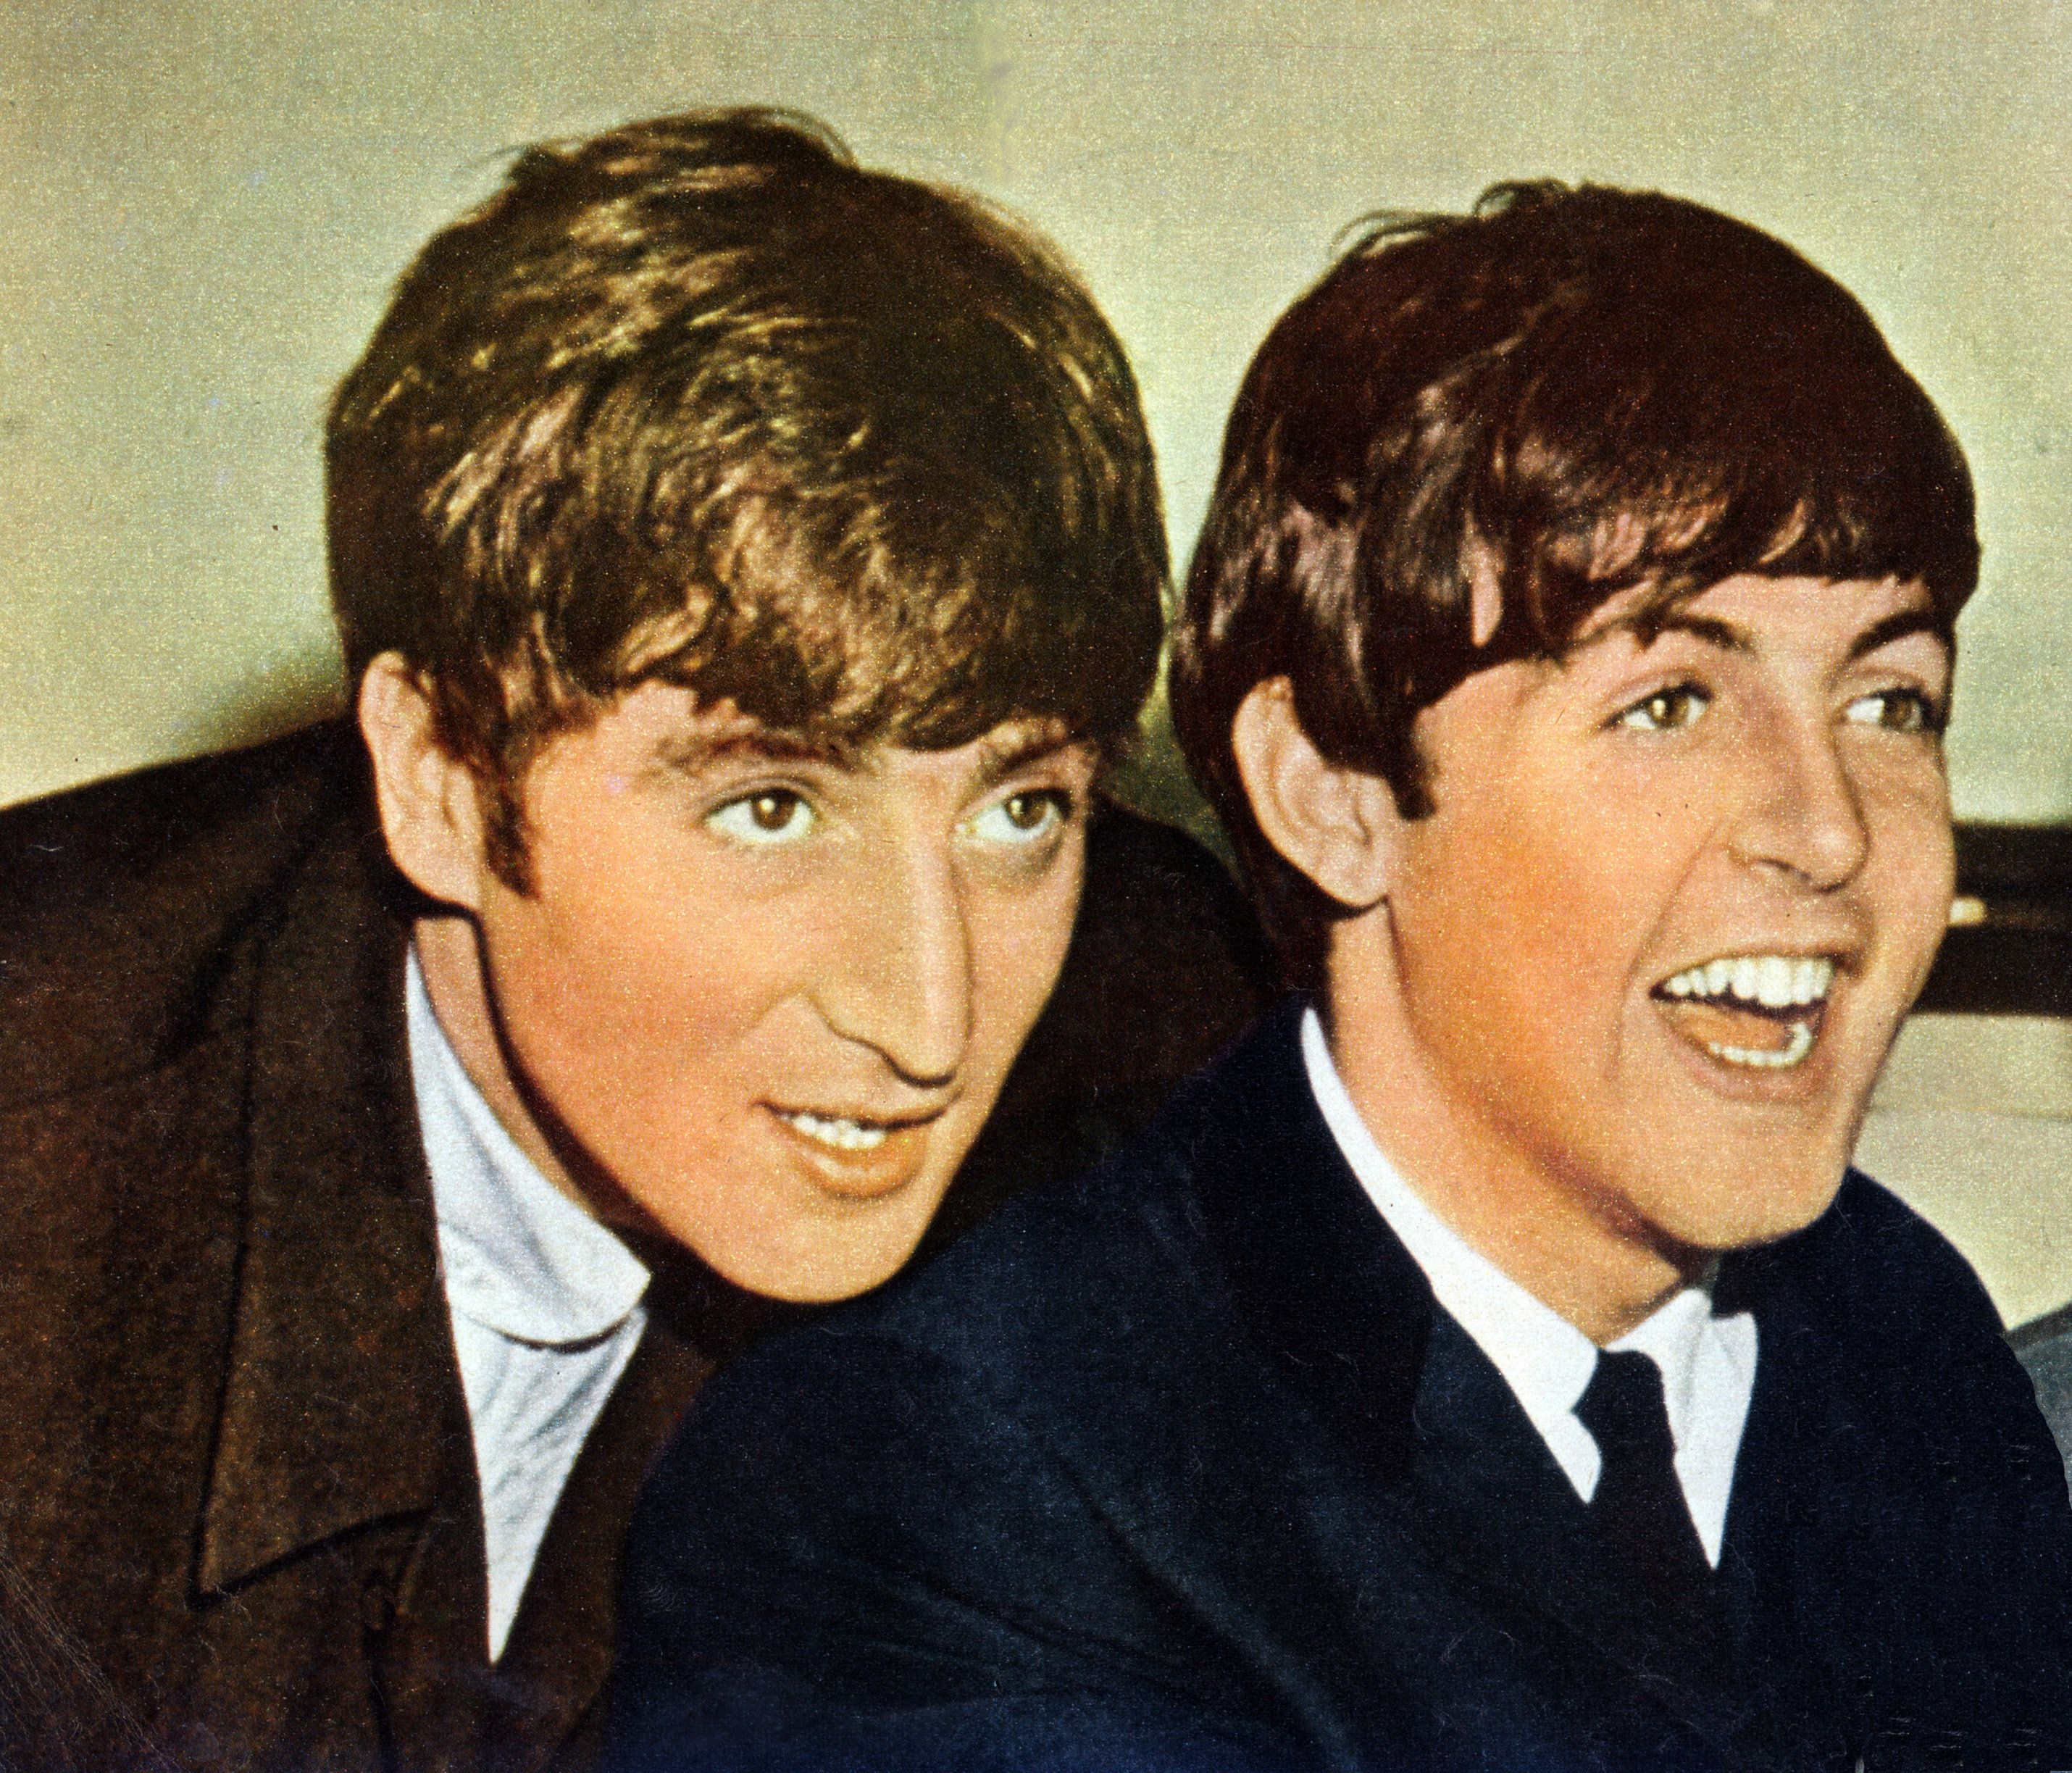 UNSPECIFIED - JANUARY 01: (AUSTRALIA OUT) Photo of  John Lennon (1940-1980) and Paul McCartney (right) from The Beatles posed in 1963. (Photo by GAB Archive/Redferns)